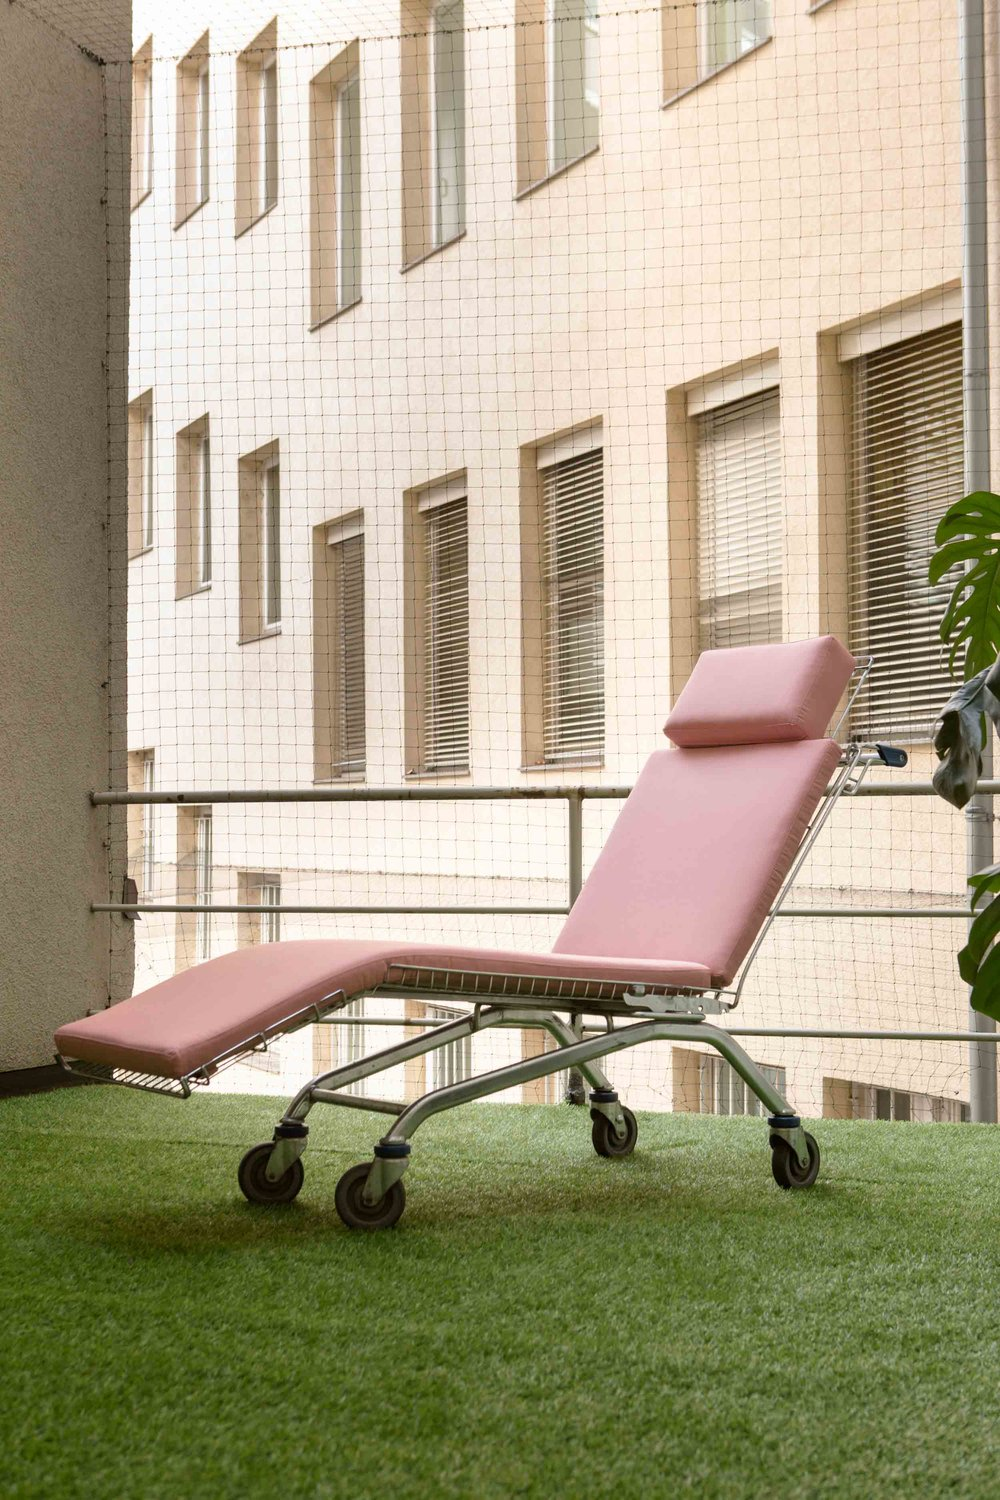 Mike Bouchet \ Sylva Lounger, 2018 (shopping cart, cushion)